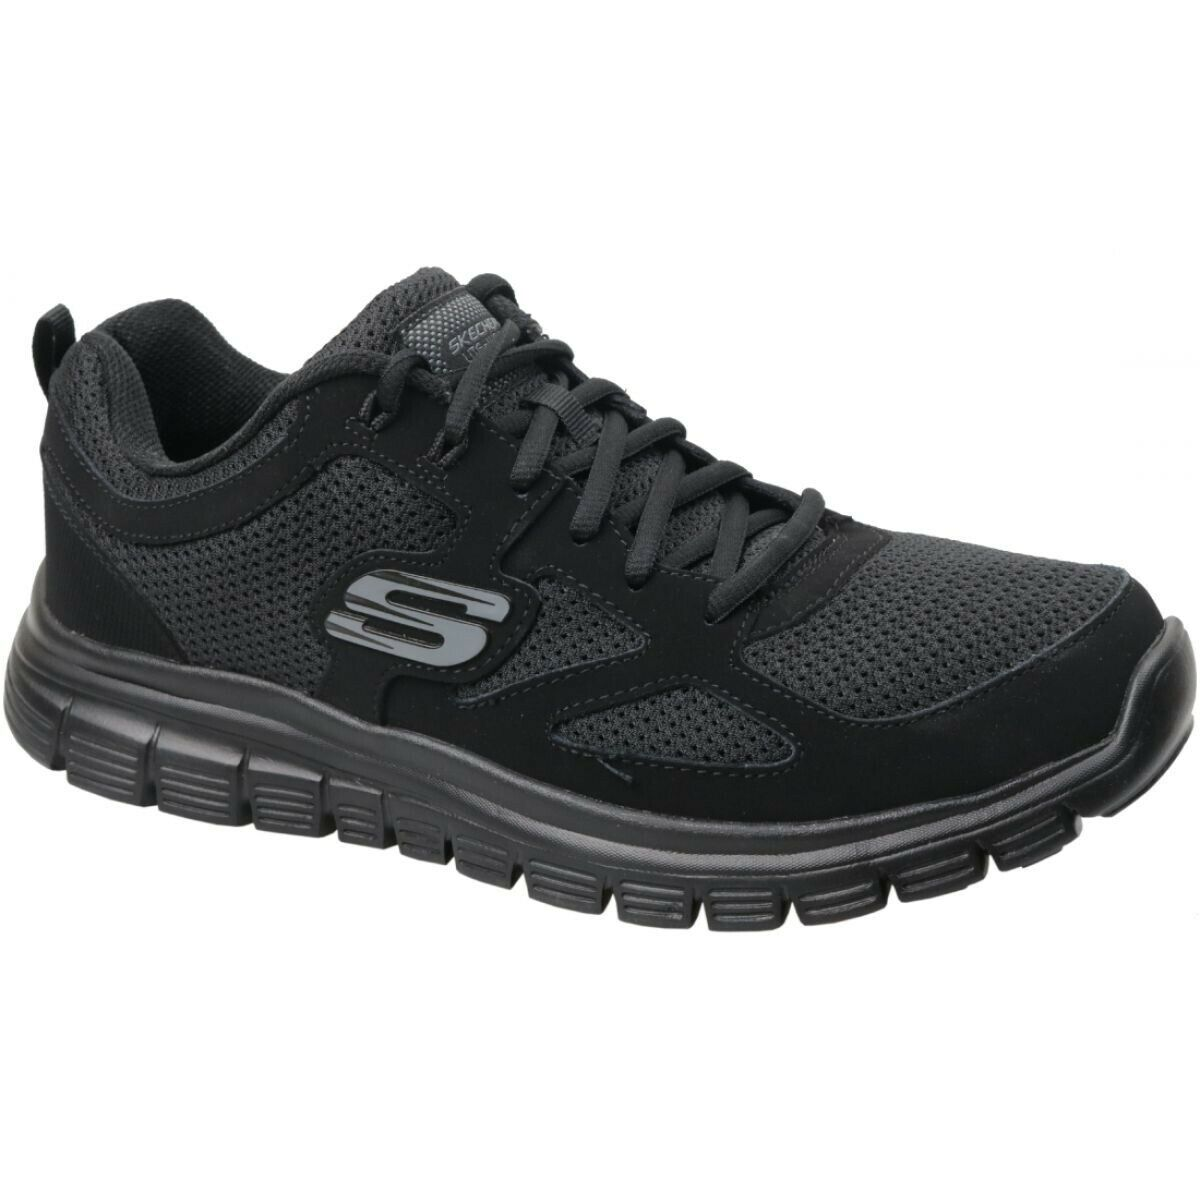 Skechers Men's Burns Agoura Trainers